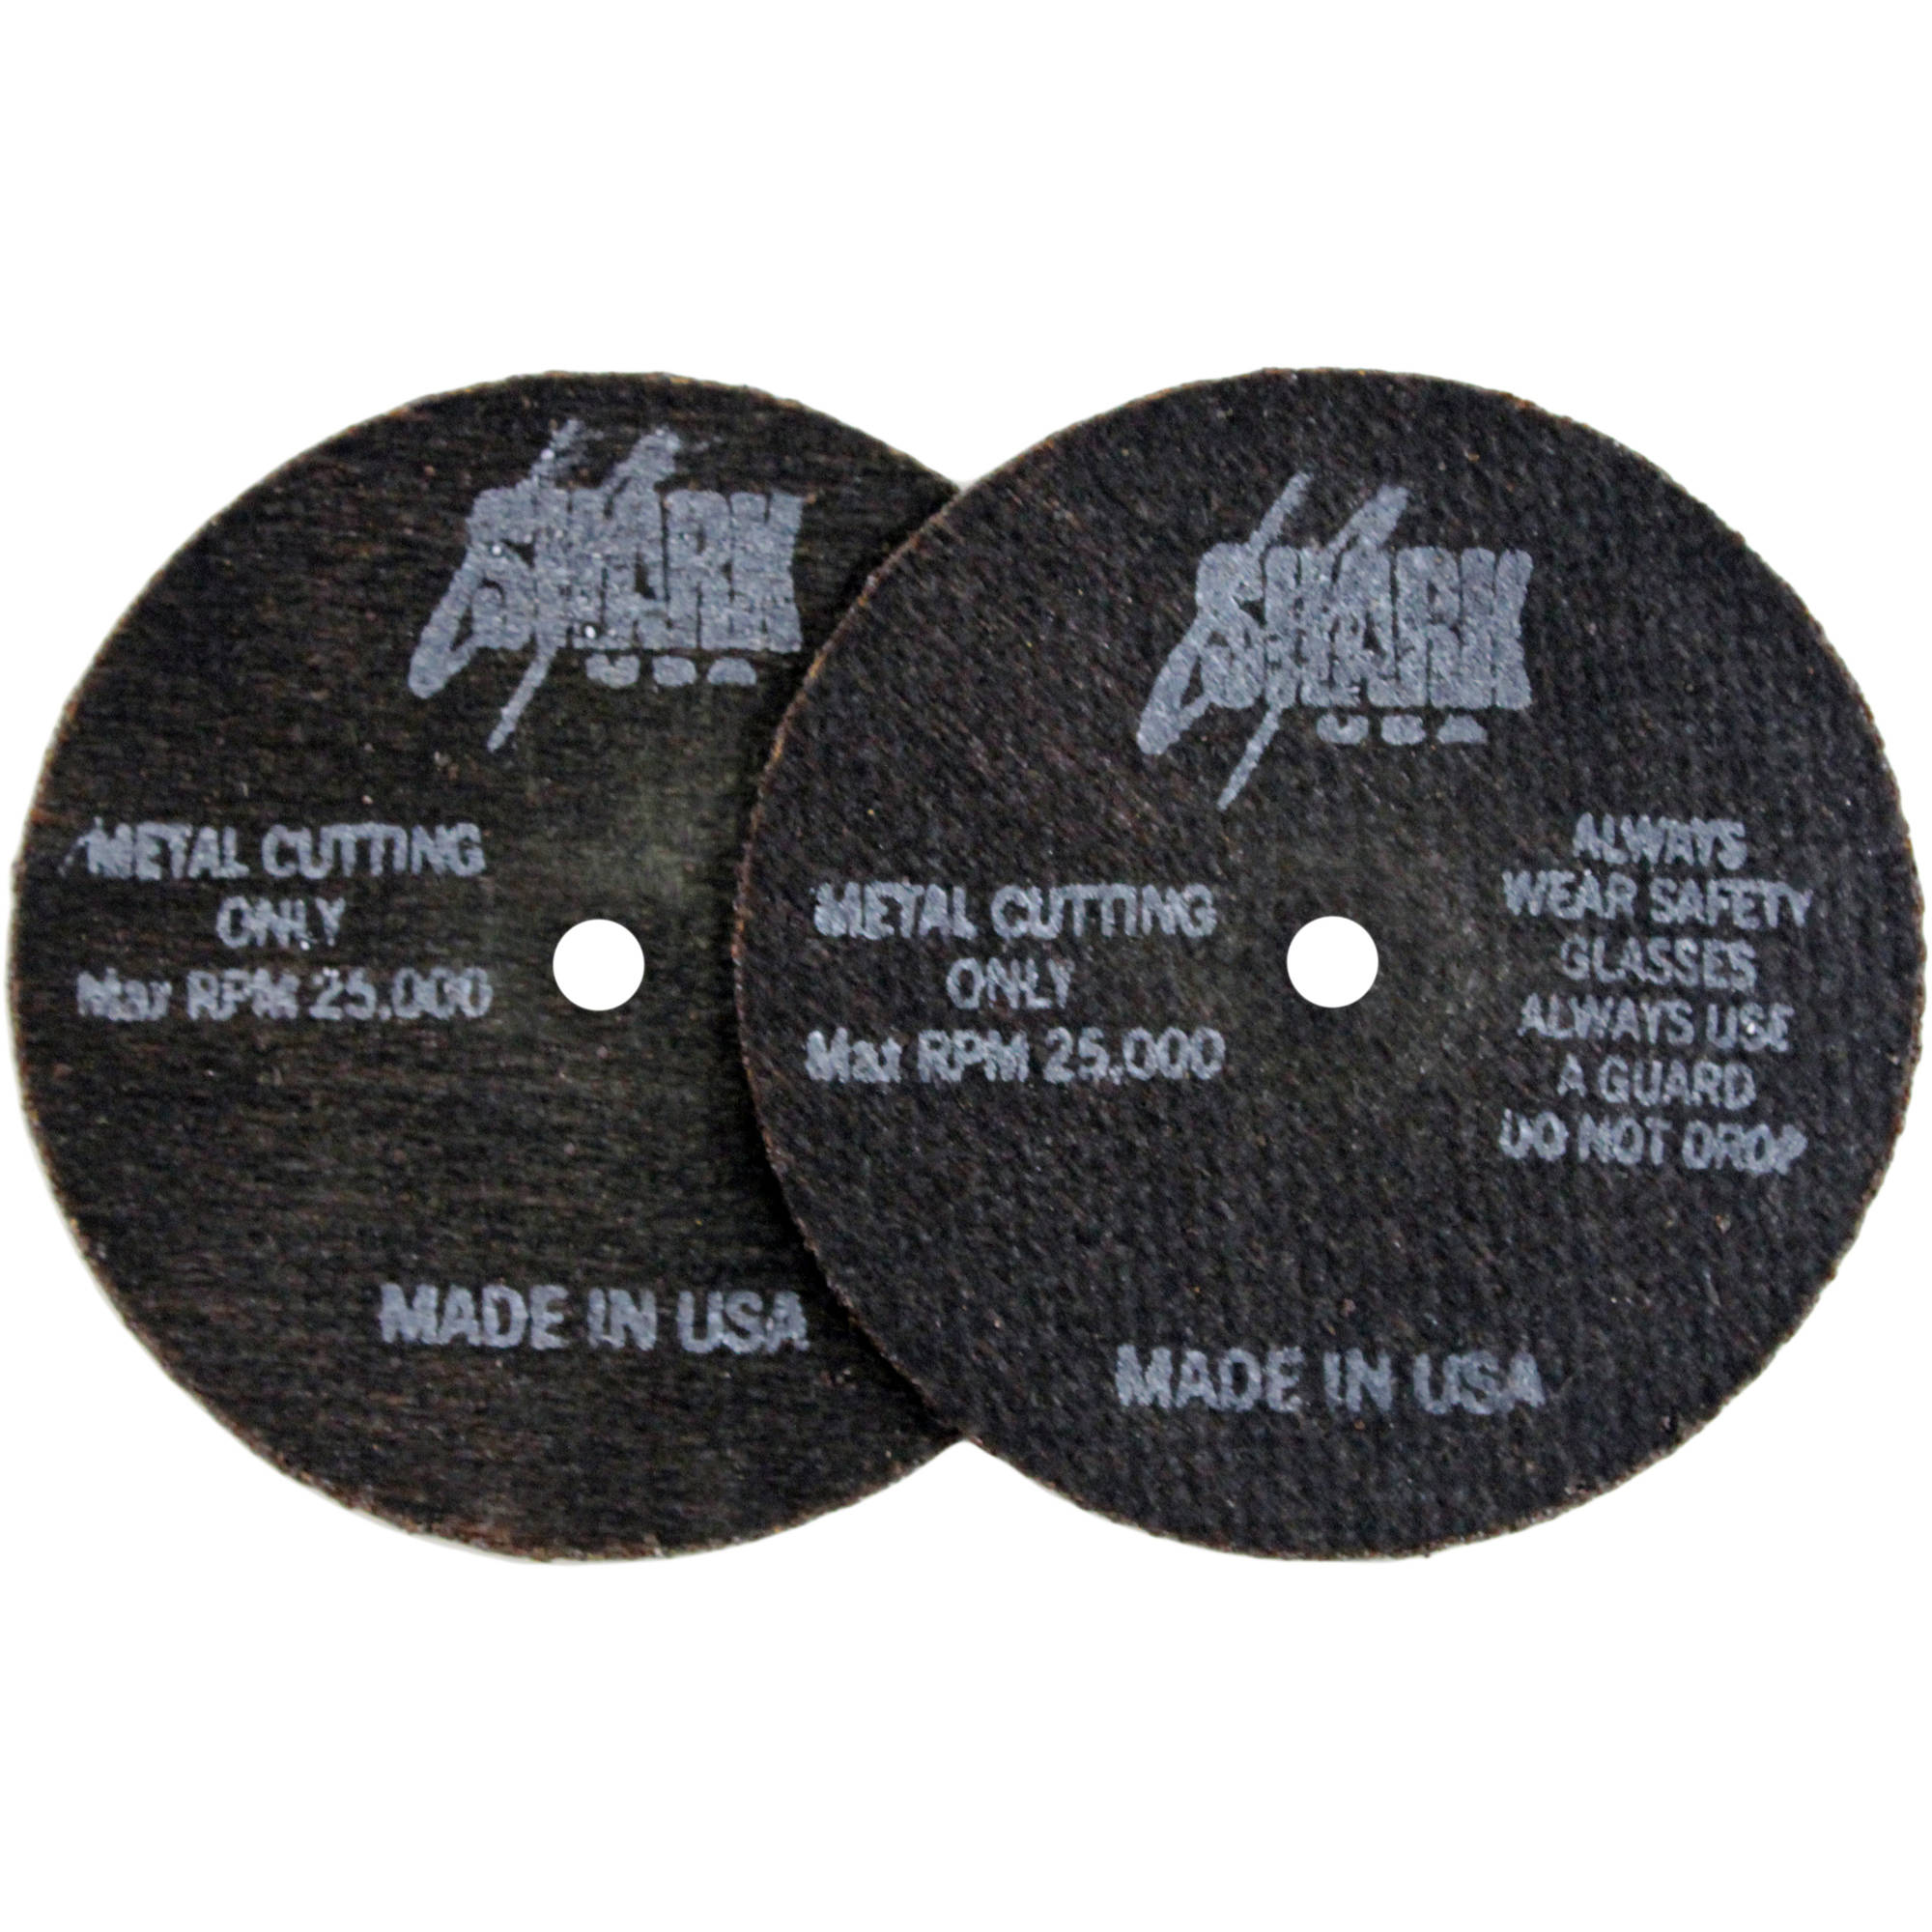 "Shark Cutoff Wheels, 3"" x 1/16"" x 1/4"", 50pk, 54 Grit"